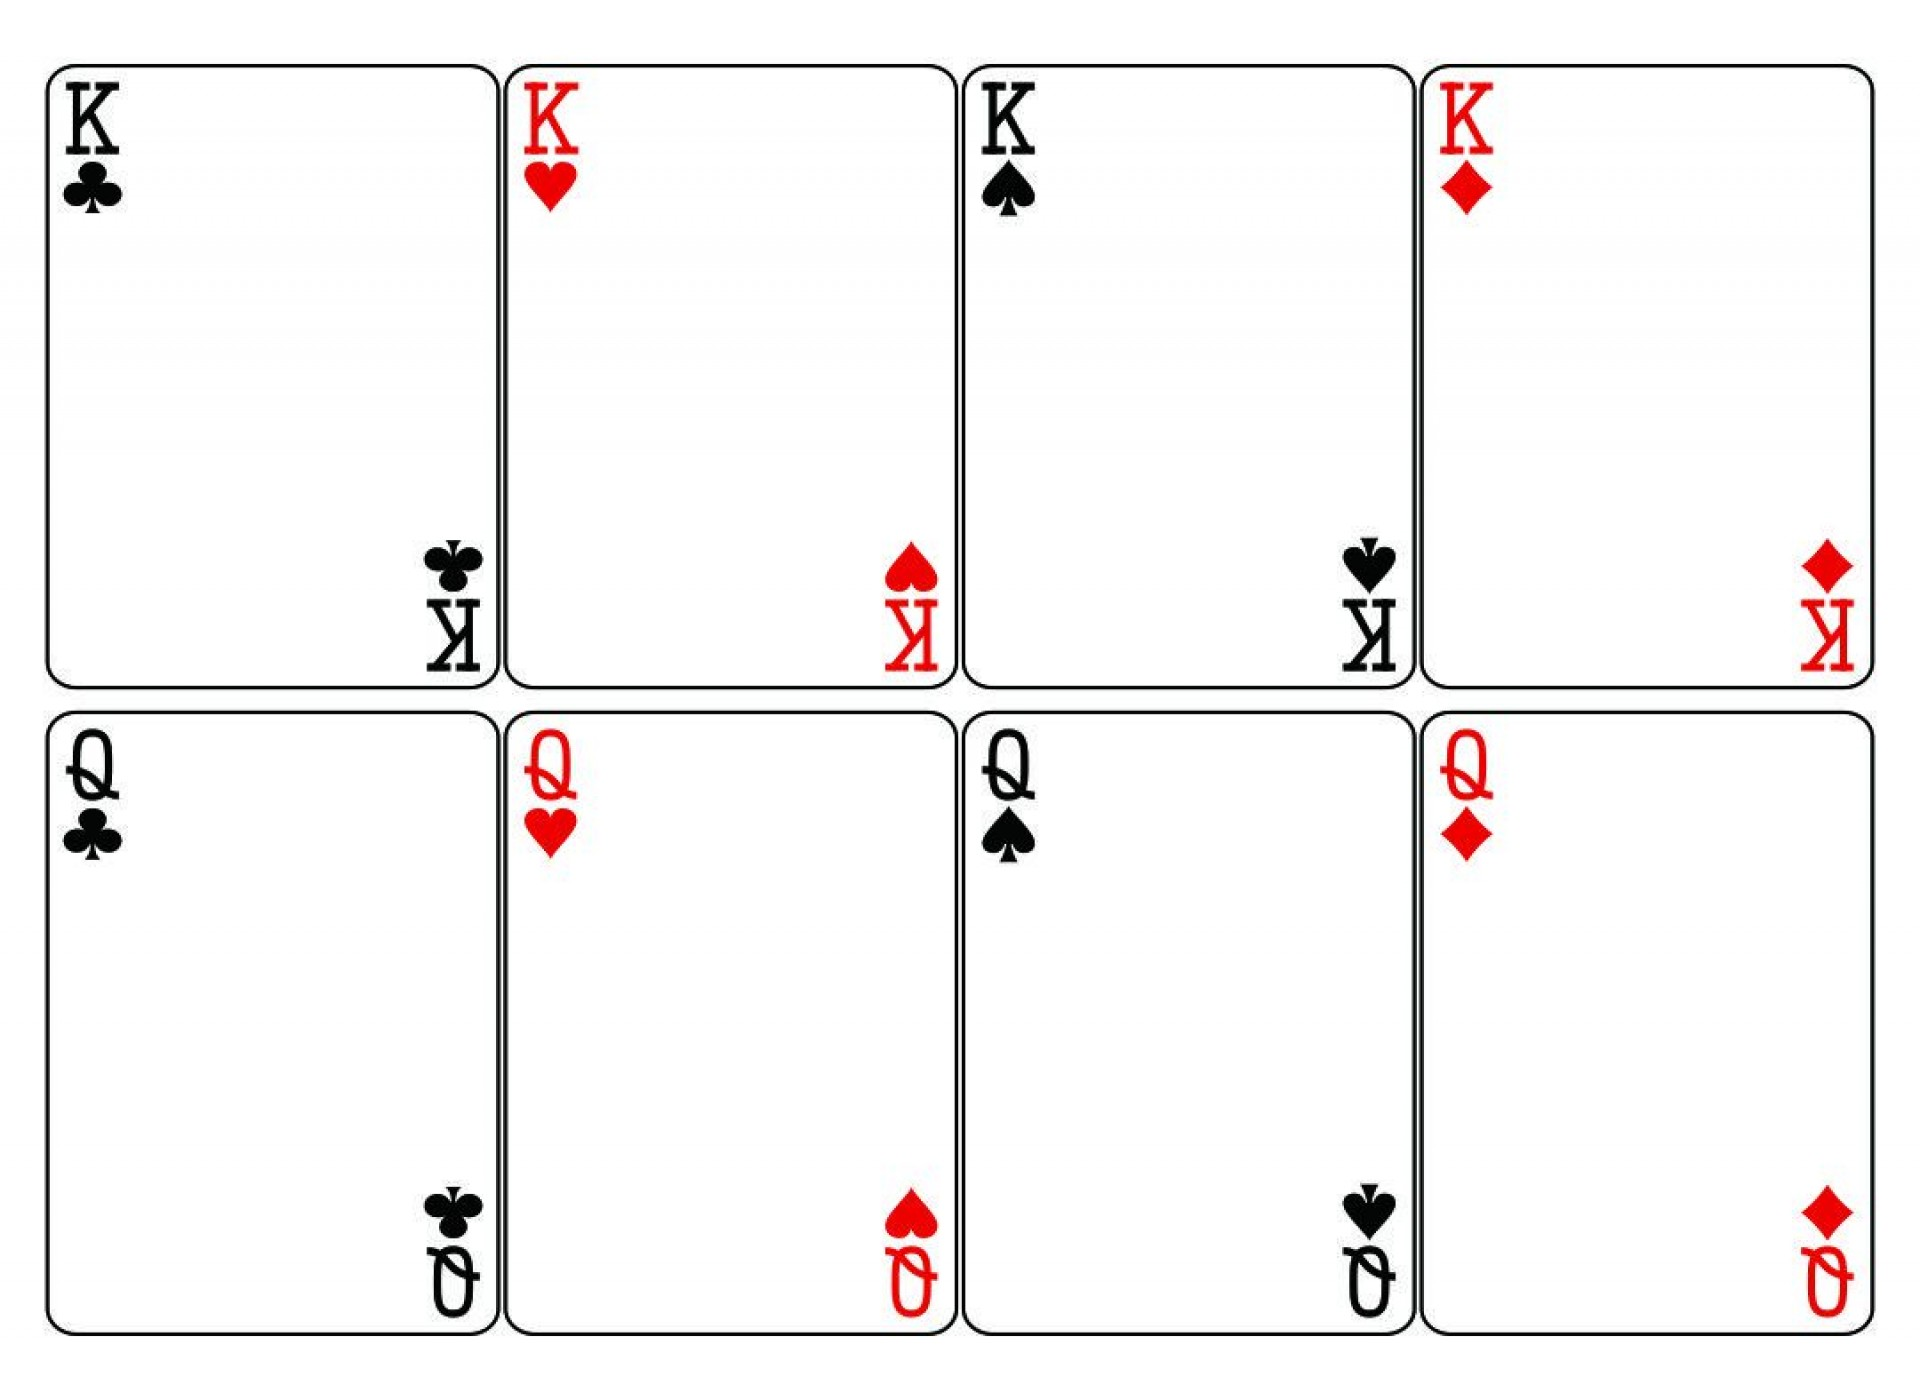 003 Phenomenal Blank Playing Card Template Word High Resolution 1920